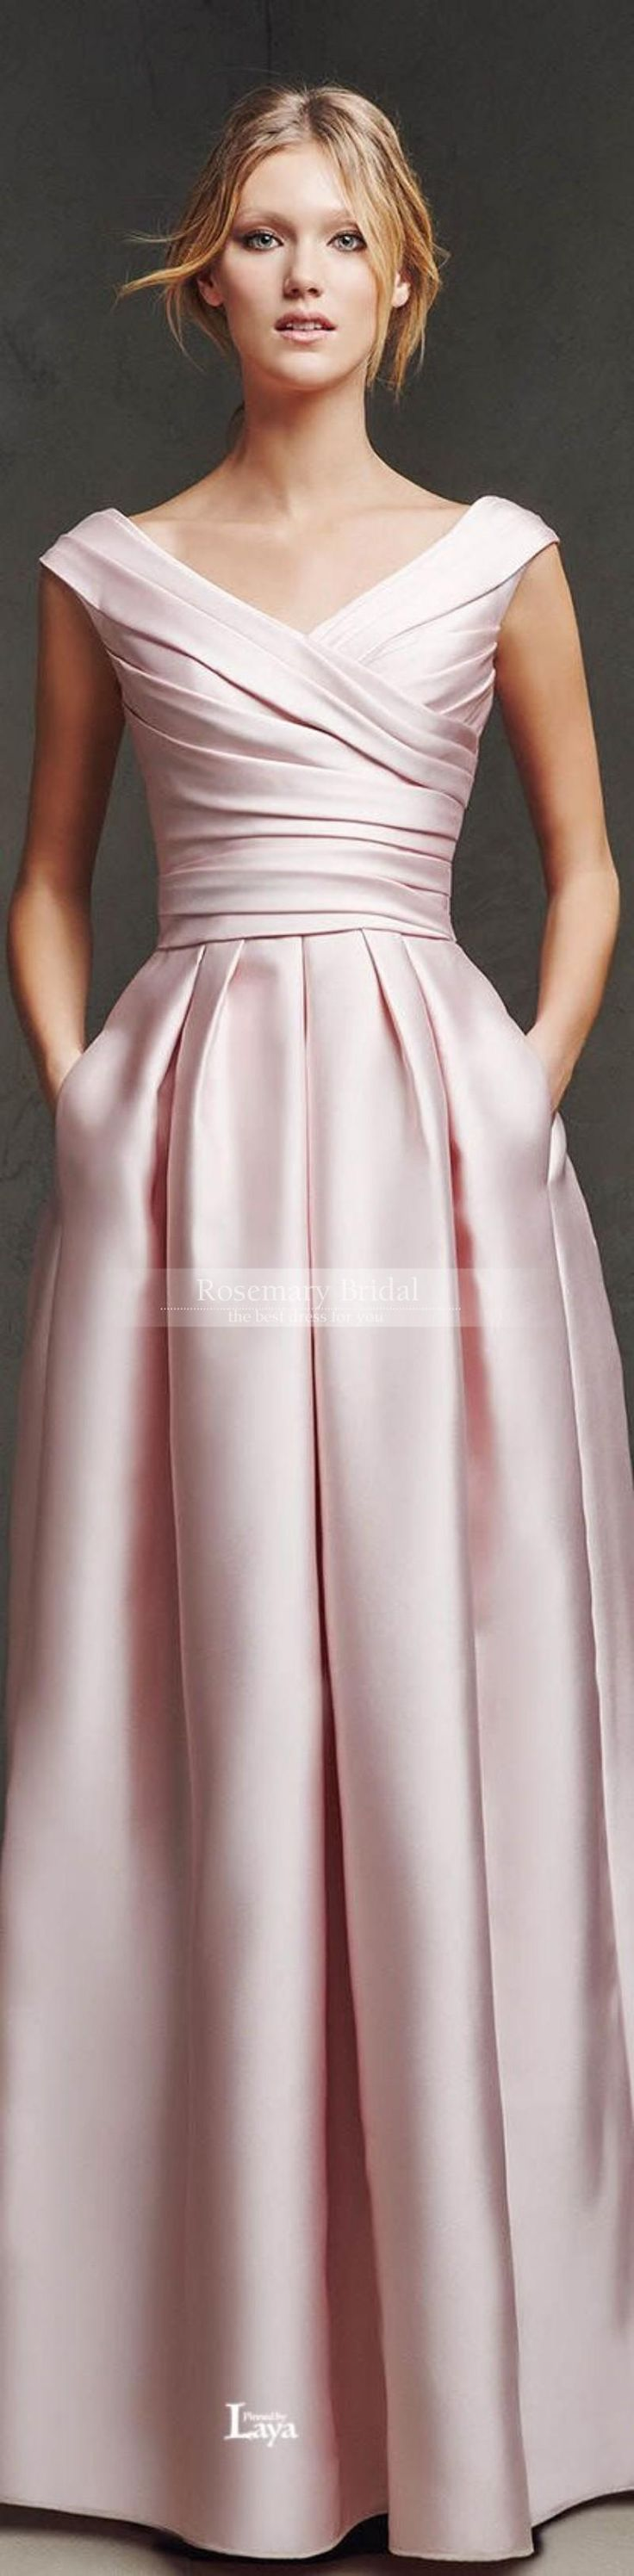 25 cute elegant bridesmaid dresses ideas on pinterest silver elegant winter 2016 pleats a line v neck cap sleeve long floor length pink satin wedding bridesmaid dresses custom made cheap plus size ombrellifo Gallery